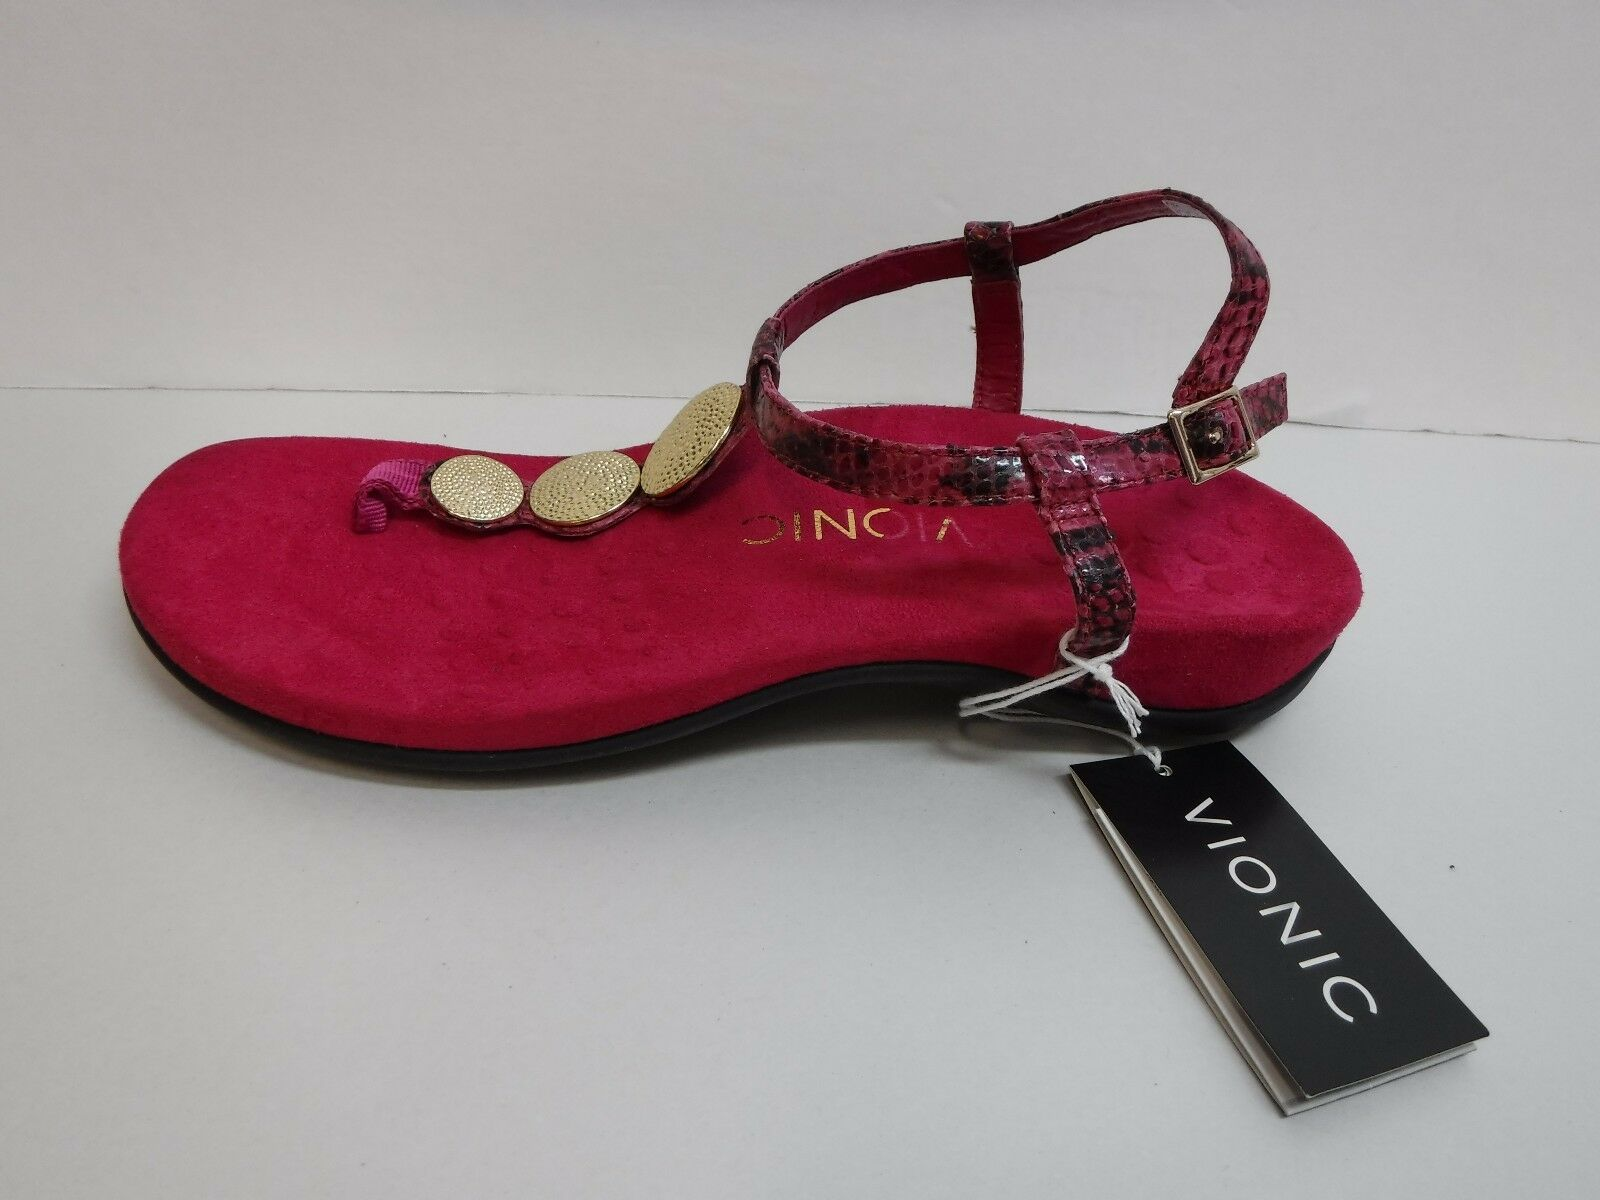 Vionic Dimensione 6 6 6 Raspberry  Sandals New donna scarpe ea82e9